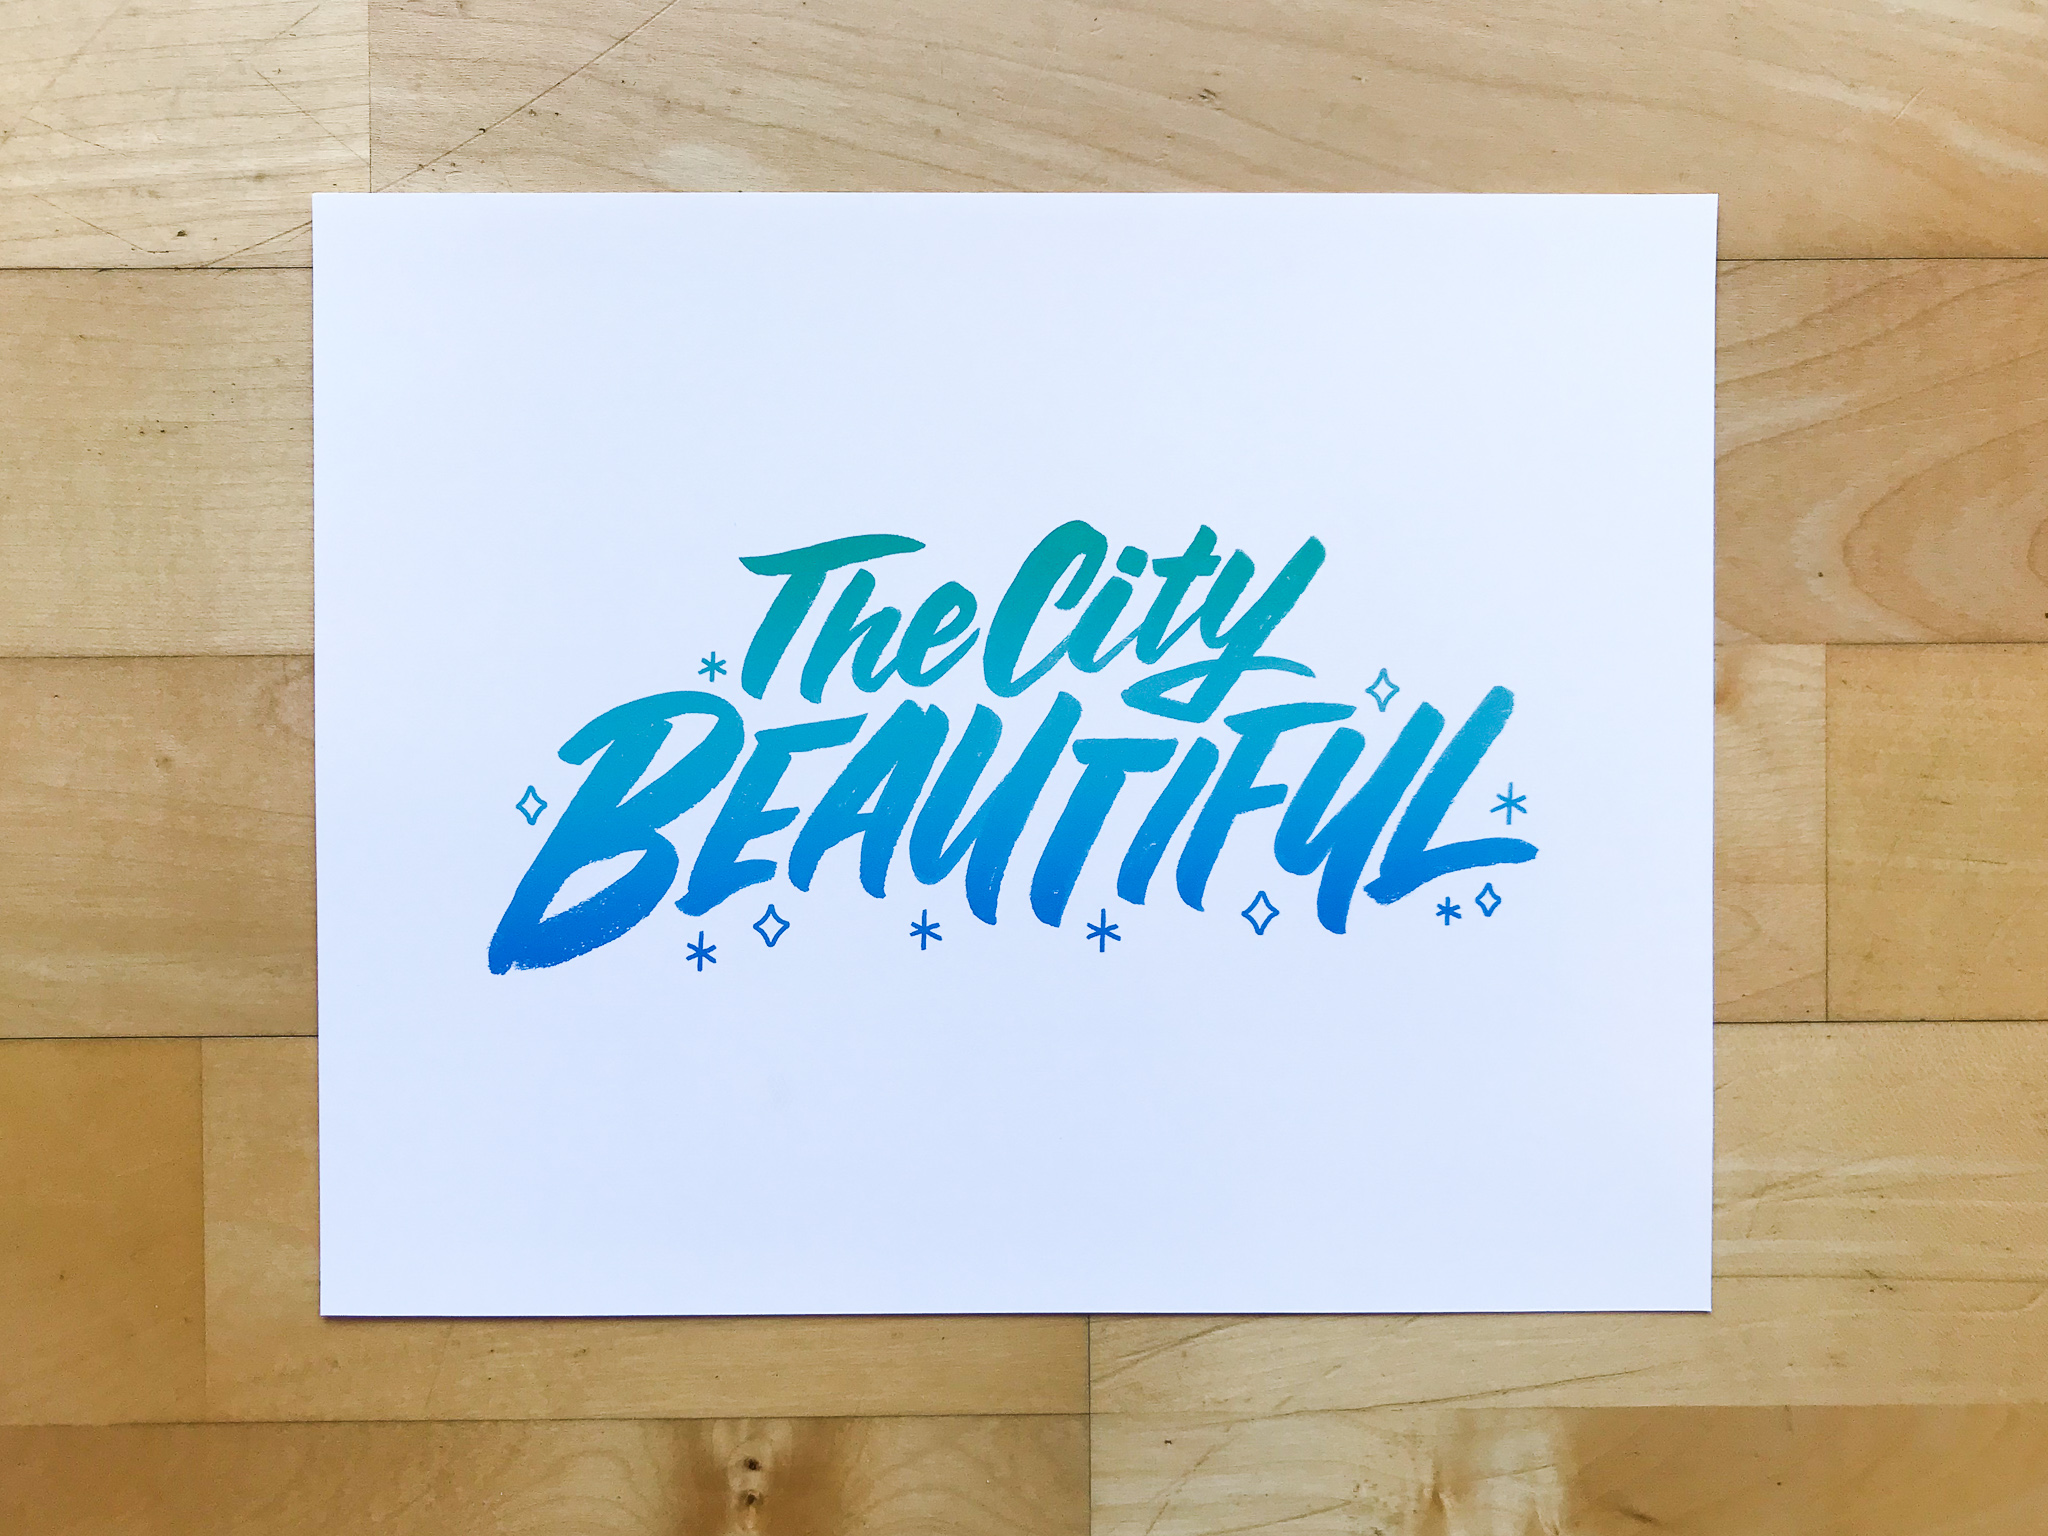 Downtown Orlando Neighborhood prints hand lettered by Hillery Powers